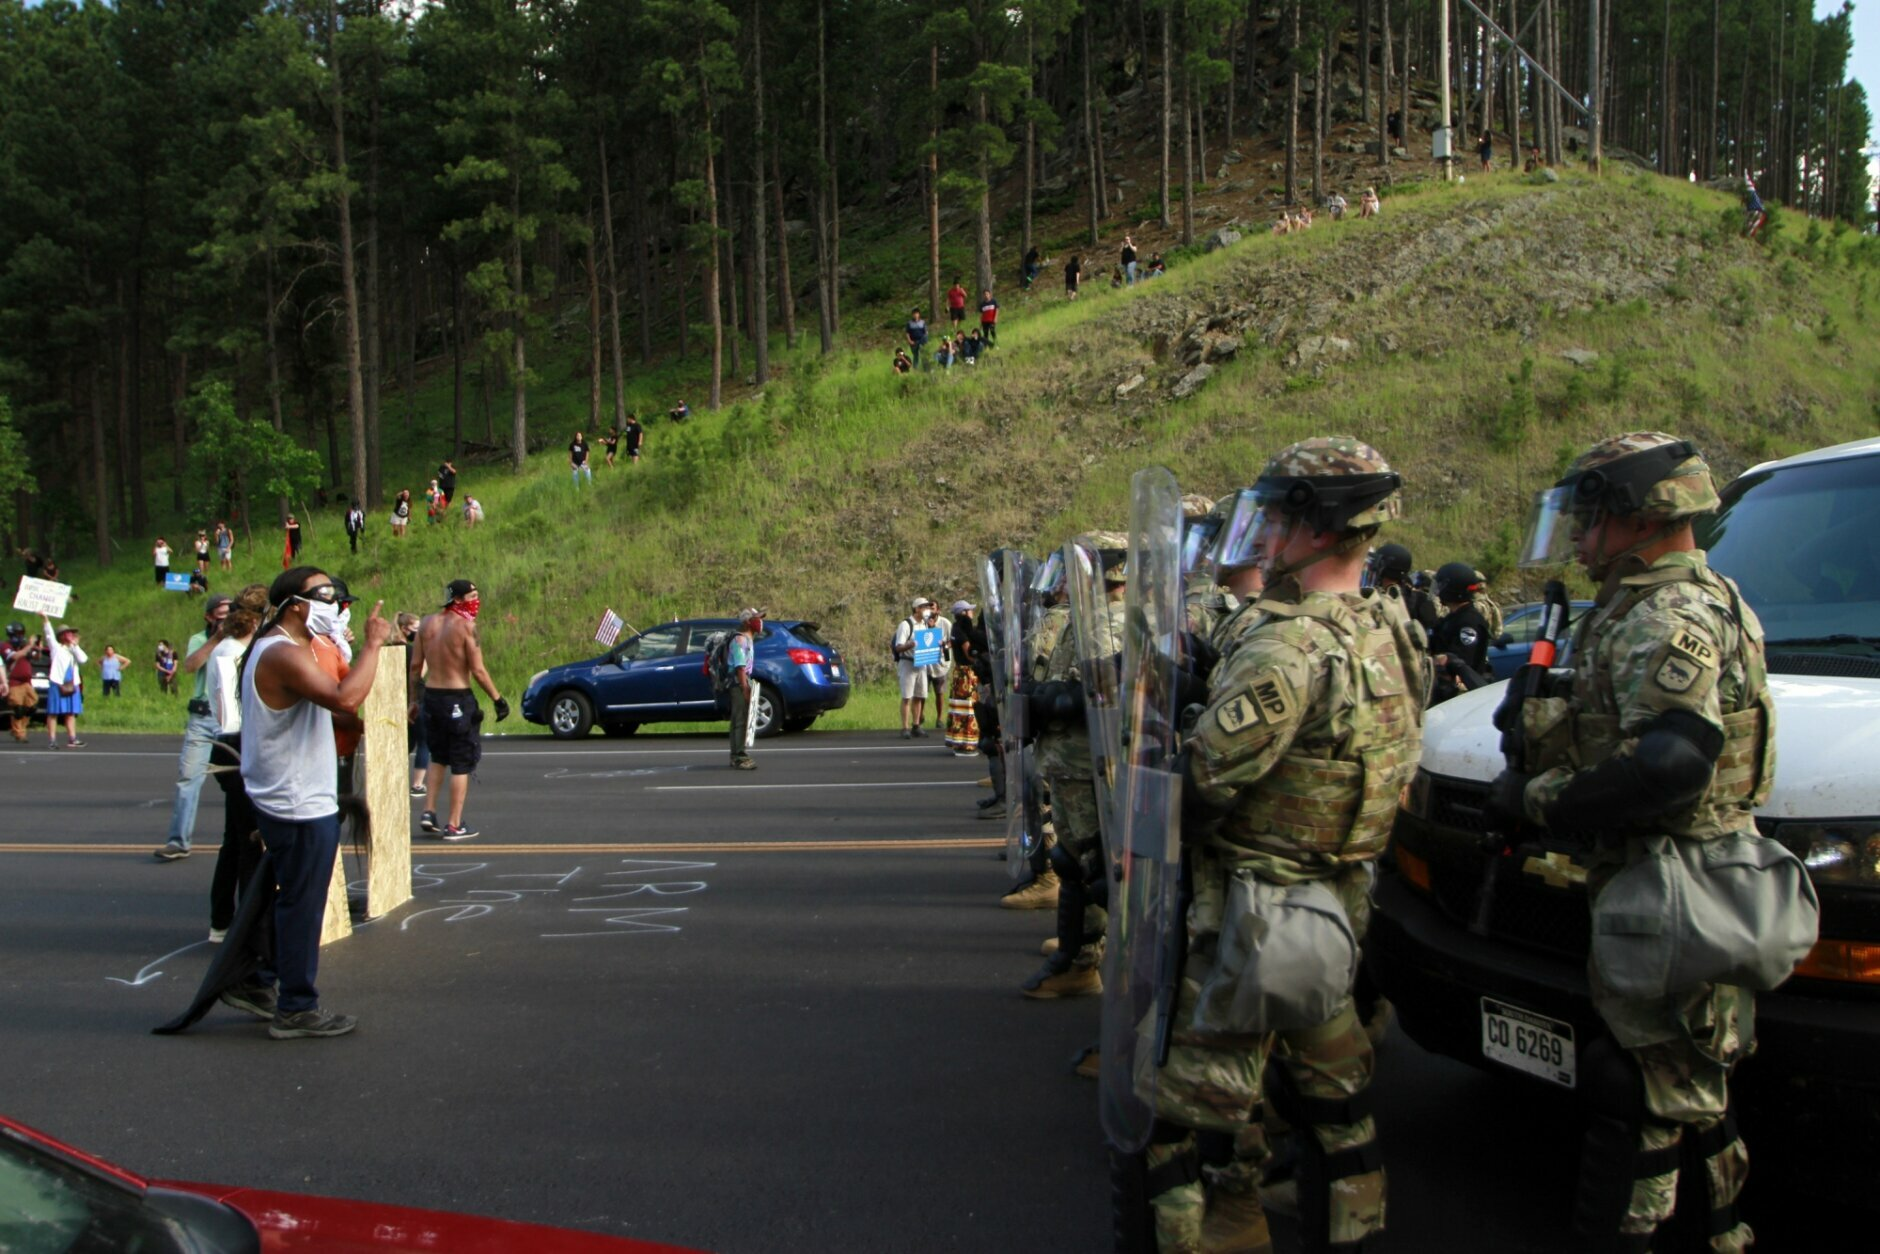 Native American protesters confront a line of law enforcement officers in Keystone, S.D., on the road leading to Mount Rushmore ahead of President Donald Trump's visit to the memorial on Friday, July 3, 2020. (AP Photo/Stephen Groves)